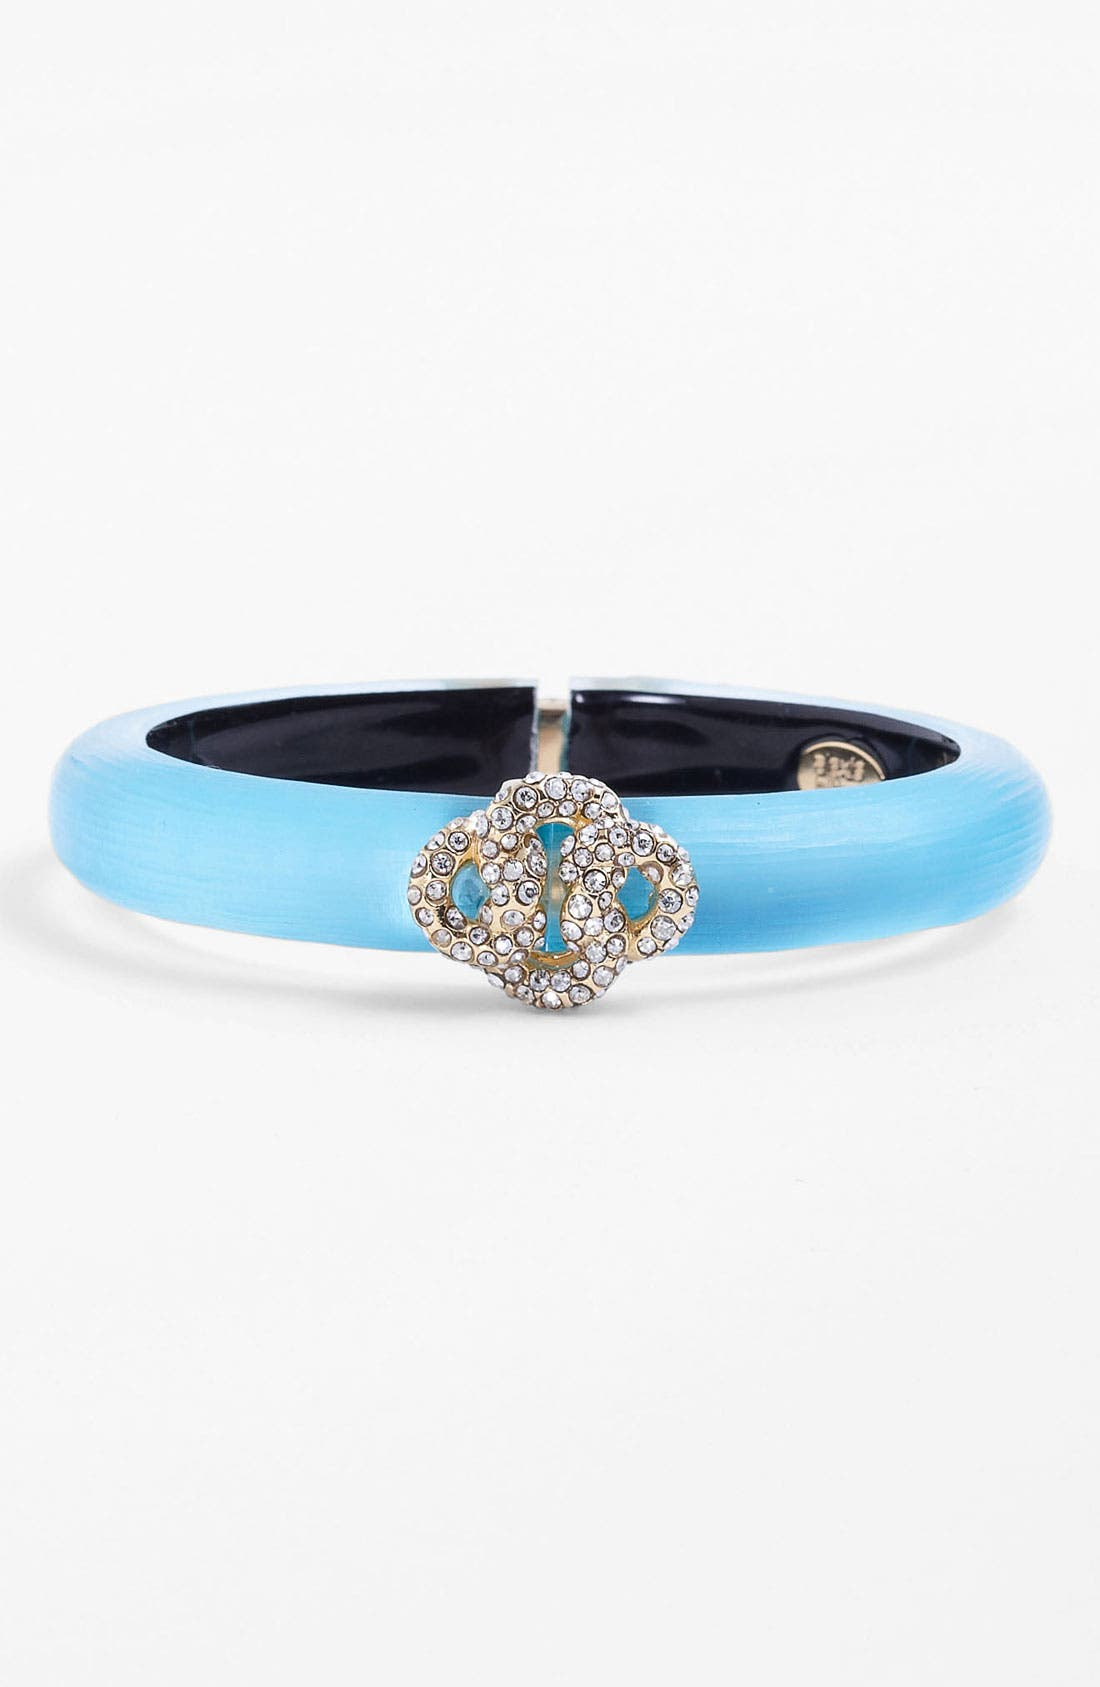 Alternate Image 1 Selected - Alexis Bittar 'Lucite® - Mod' Knot Bracelet (Nordstrom Exclusive)